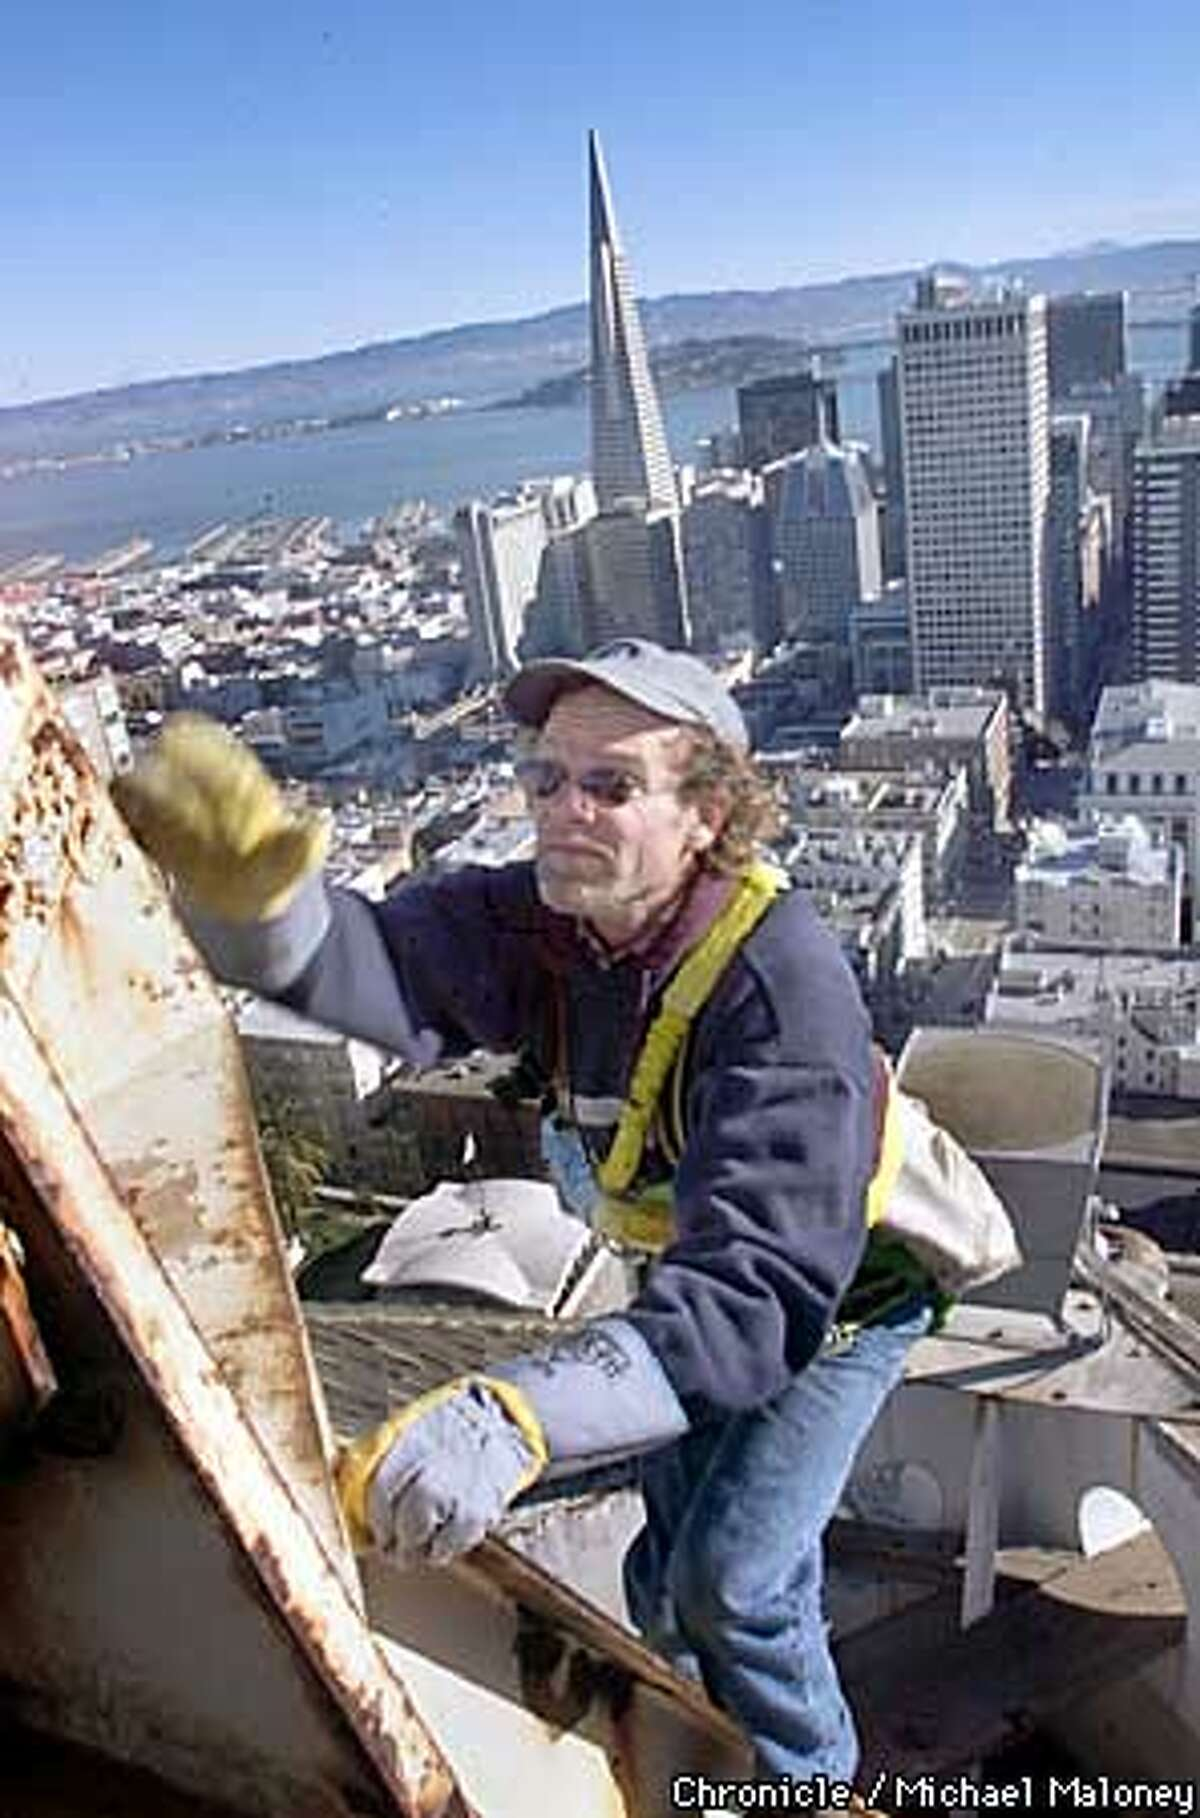 Jim Phelan climbs up the base of a 70 foot fiberglass flagpole on top of the Mark Hopkins Hotel in SF. He was hired to replace the worn out flag rigging. Phelan is a steeplejack who climbs up anything for a living. His business, the J.C. Phelan Company dates back to his grandfather, who worked as a steeplejack in Waterford, Ireland, over 100 years ago. CHRONICLE PHOTO BY MICHAEL MALONEY